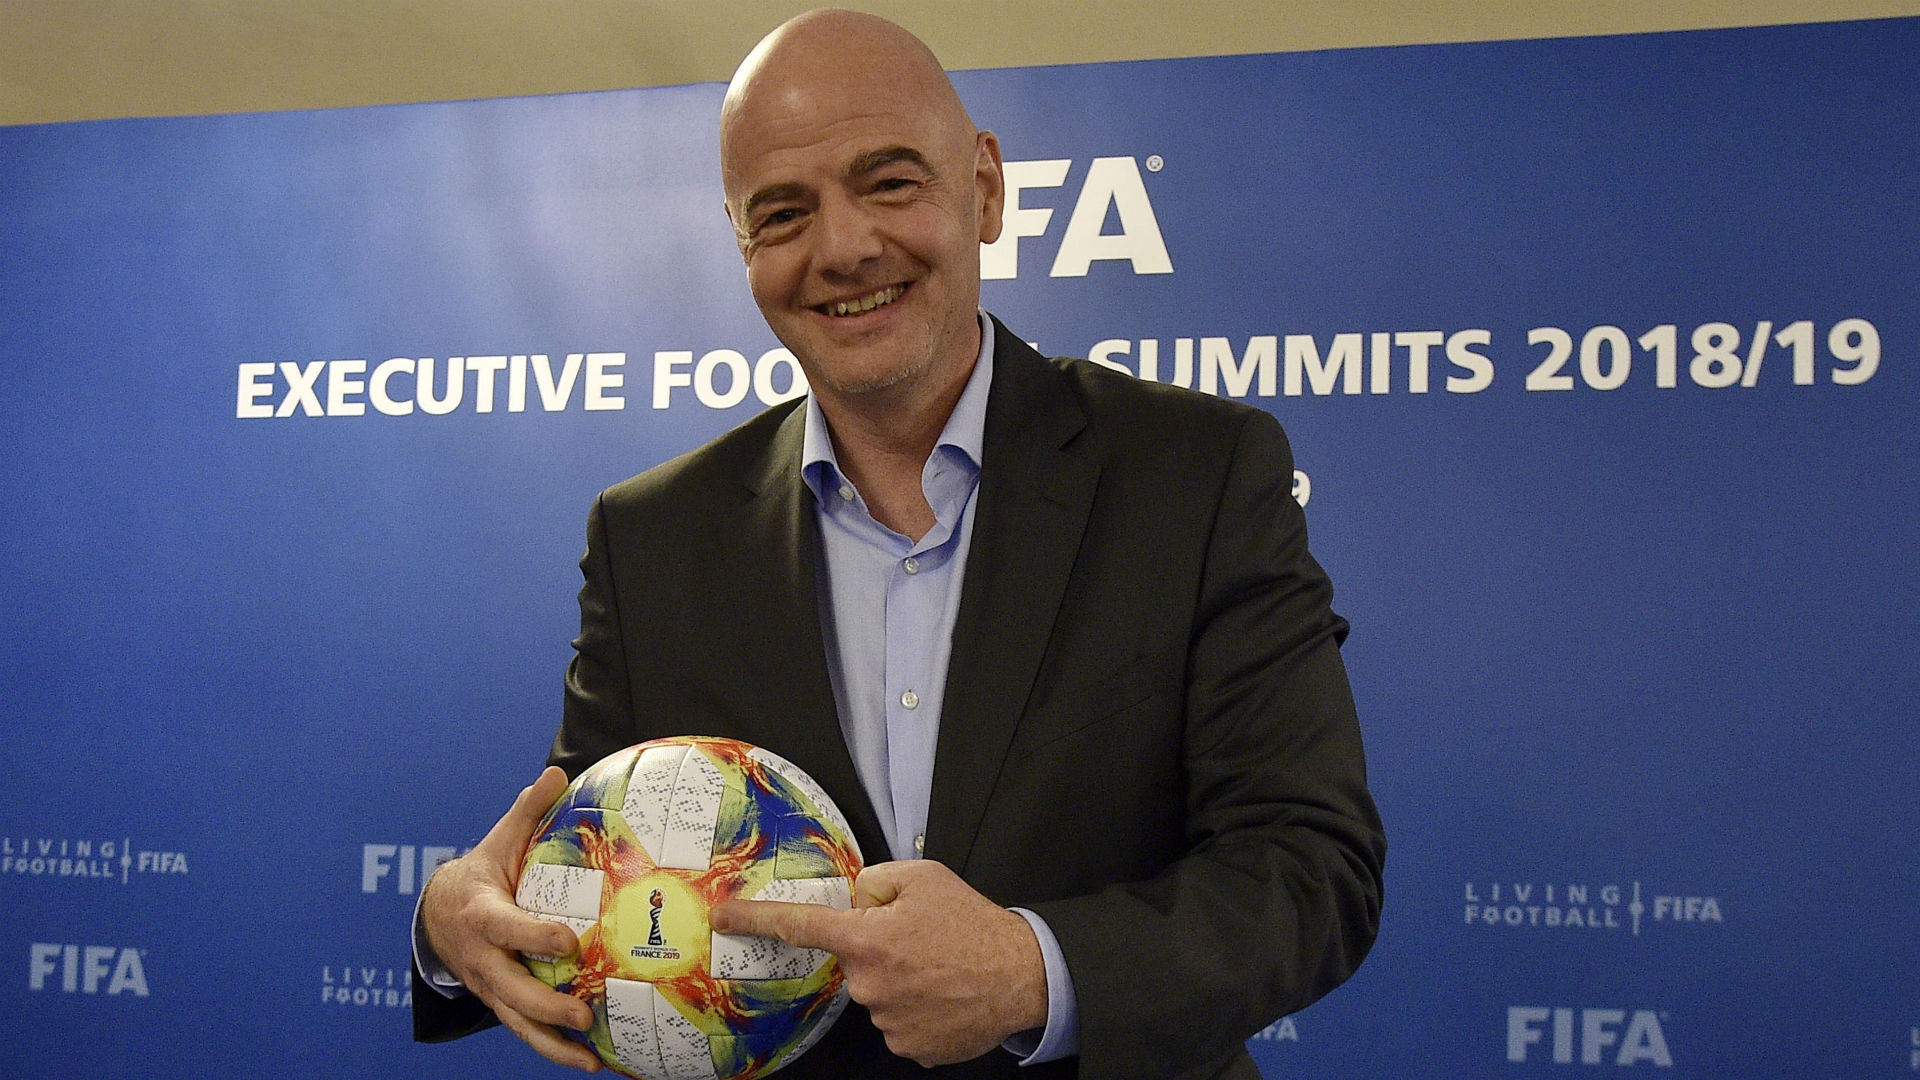 FIFA to consider extra host nations for expanded 2022 World Cup